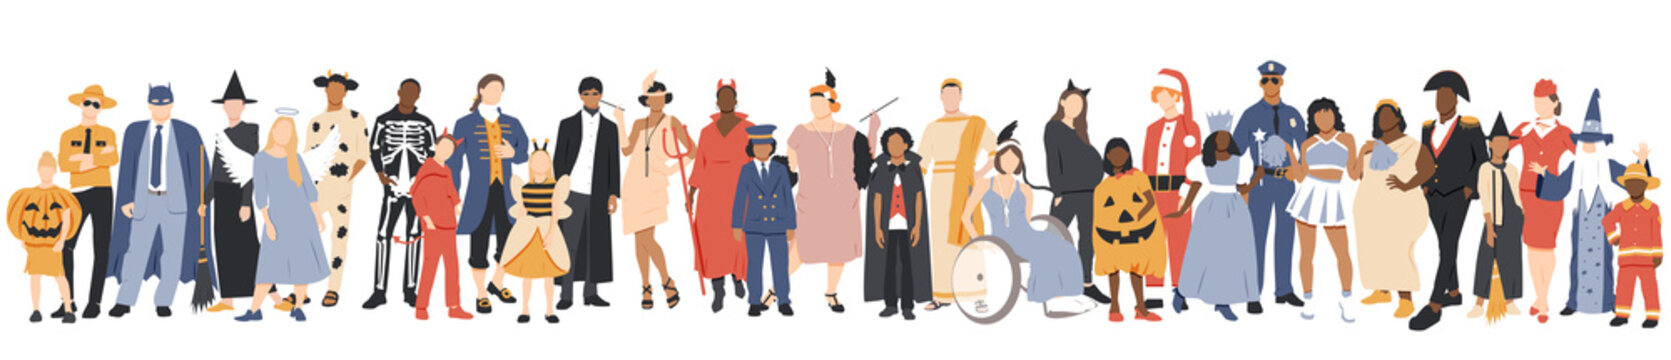 Happy Halloween banner. People in different costumes.